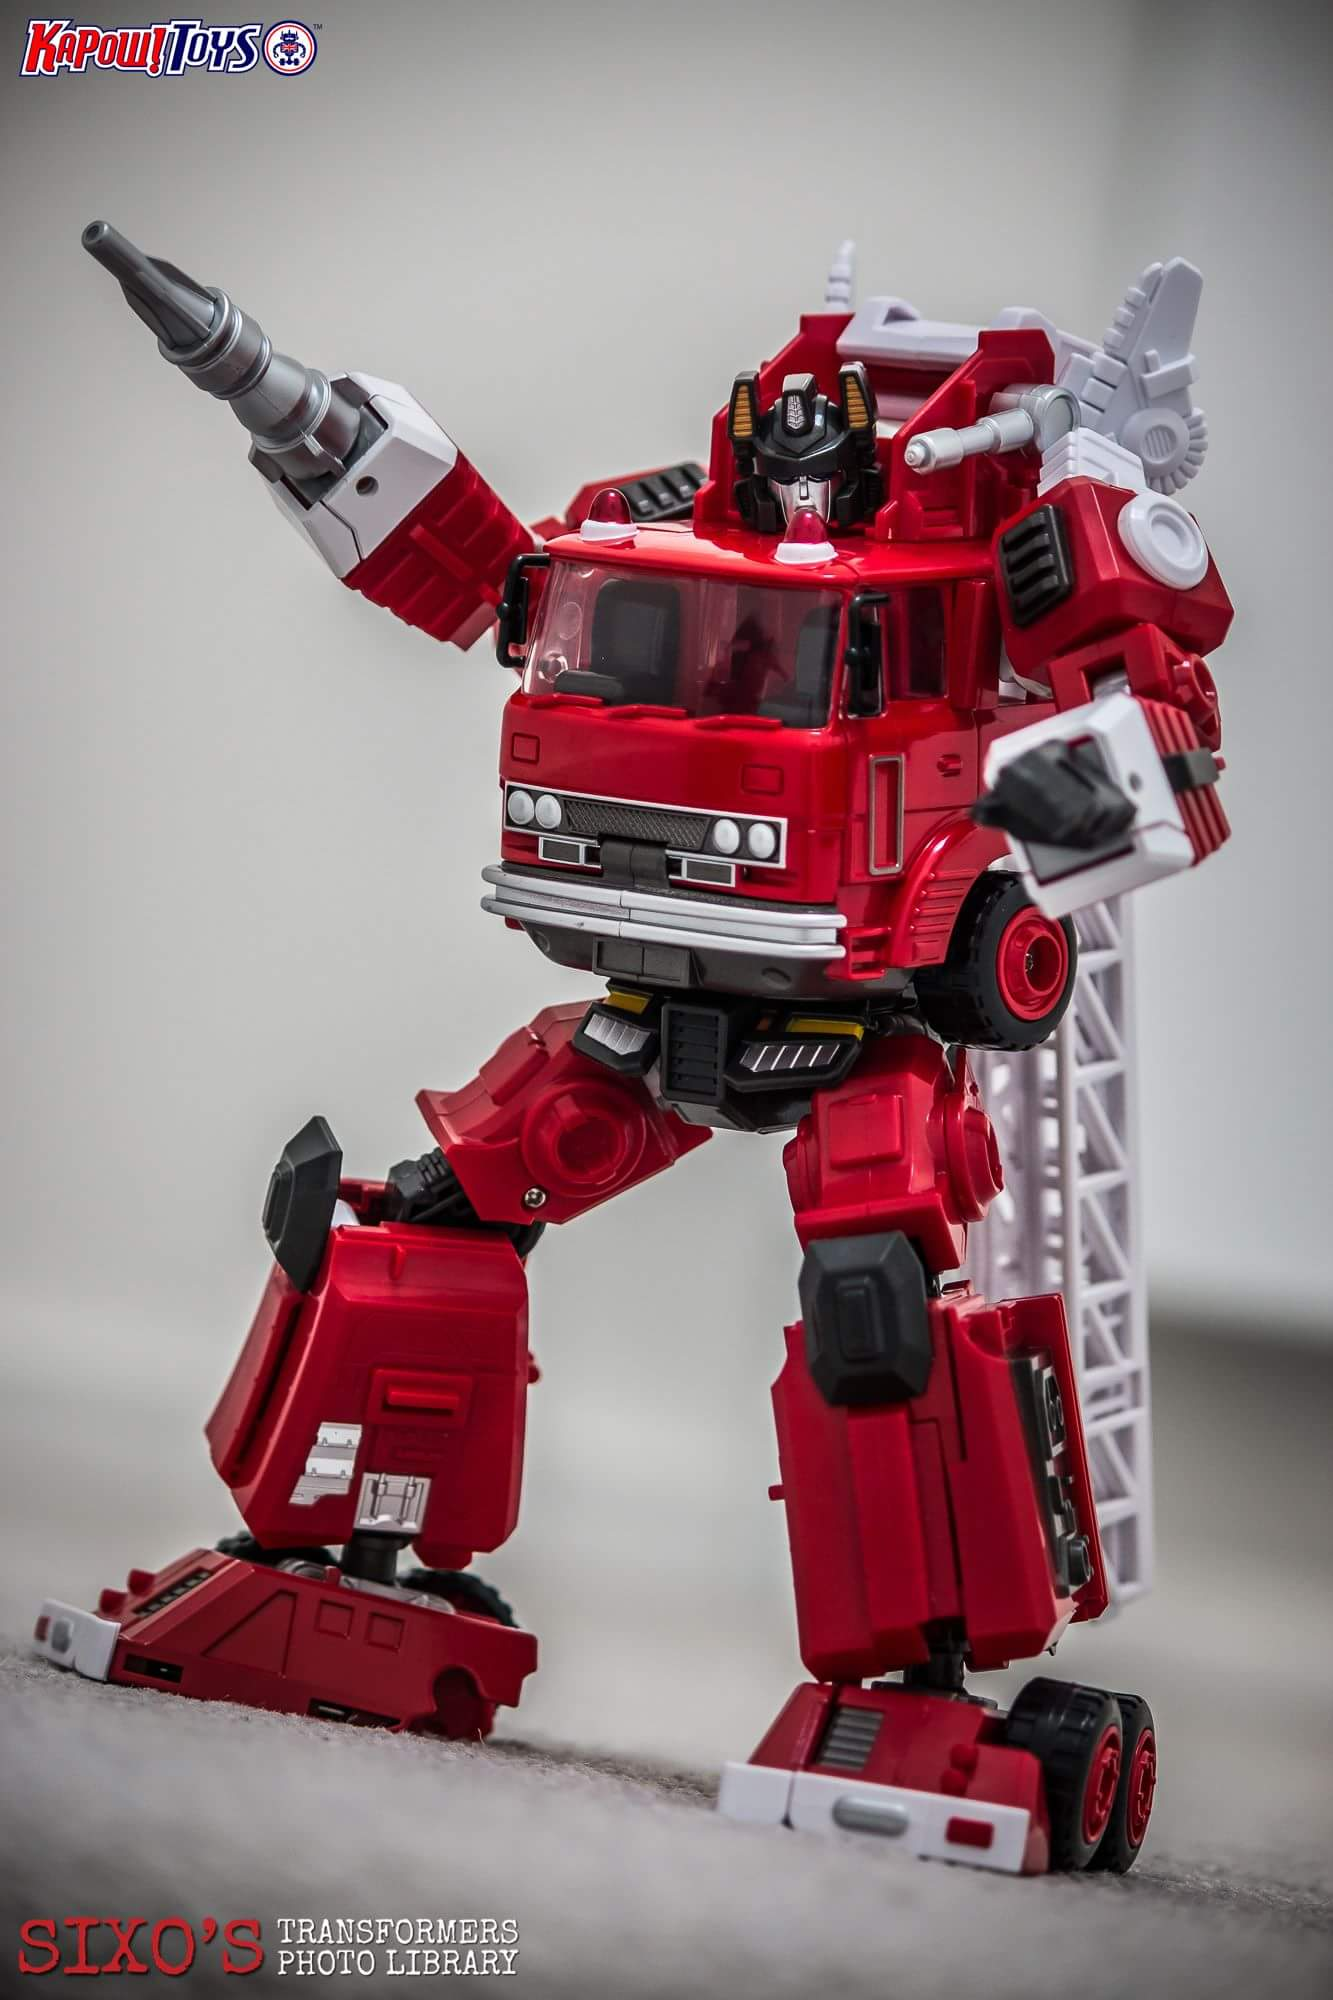 [Maketoys] Produit Tiers - MTRM-03 Hellfire (aka Inferno) et MTRM-05 Wrestle (aka Grapple/Grappin) - Page 2 5oosYBrO